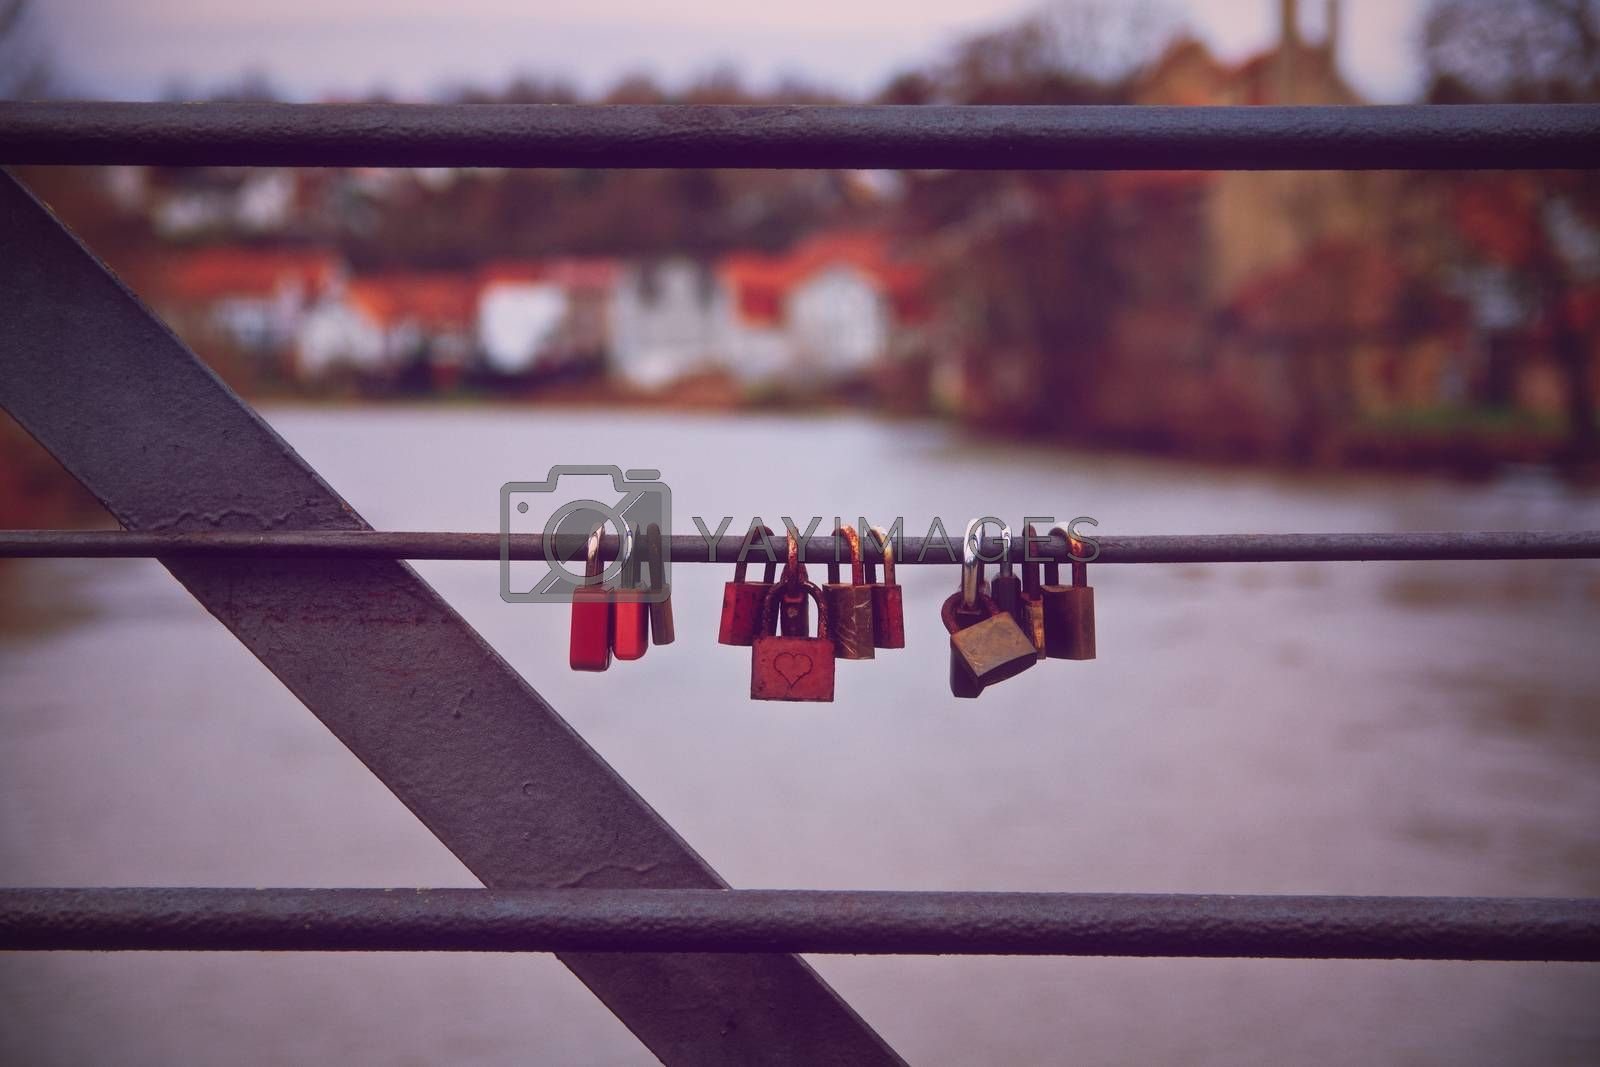 Lovelocks hanging on a bridge railing with a river in the background. Romantic lover padlocks on a bridge in a symmetric row. Symbol of unbreakable love and lifetime commitment for couples. Love, marriage, relationship concept.